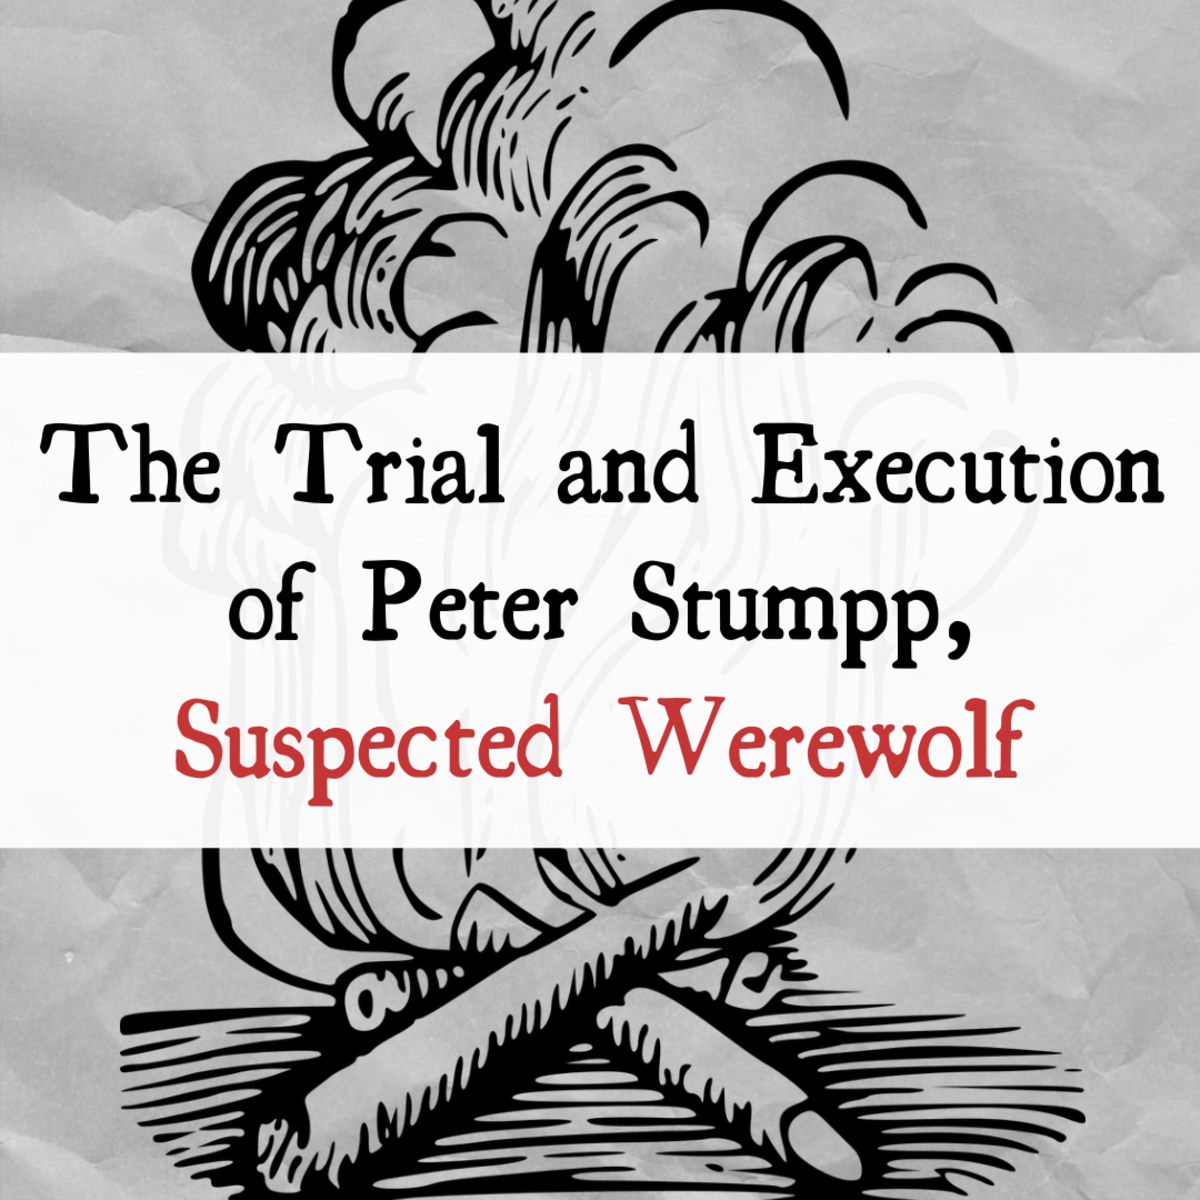 Read about the case of Peter Stumpp, a man tried and executed for being a werewolf in the 16th century.